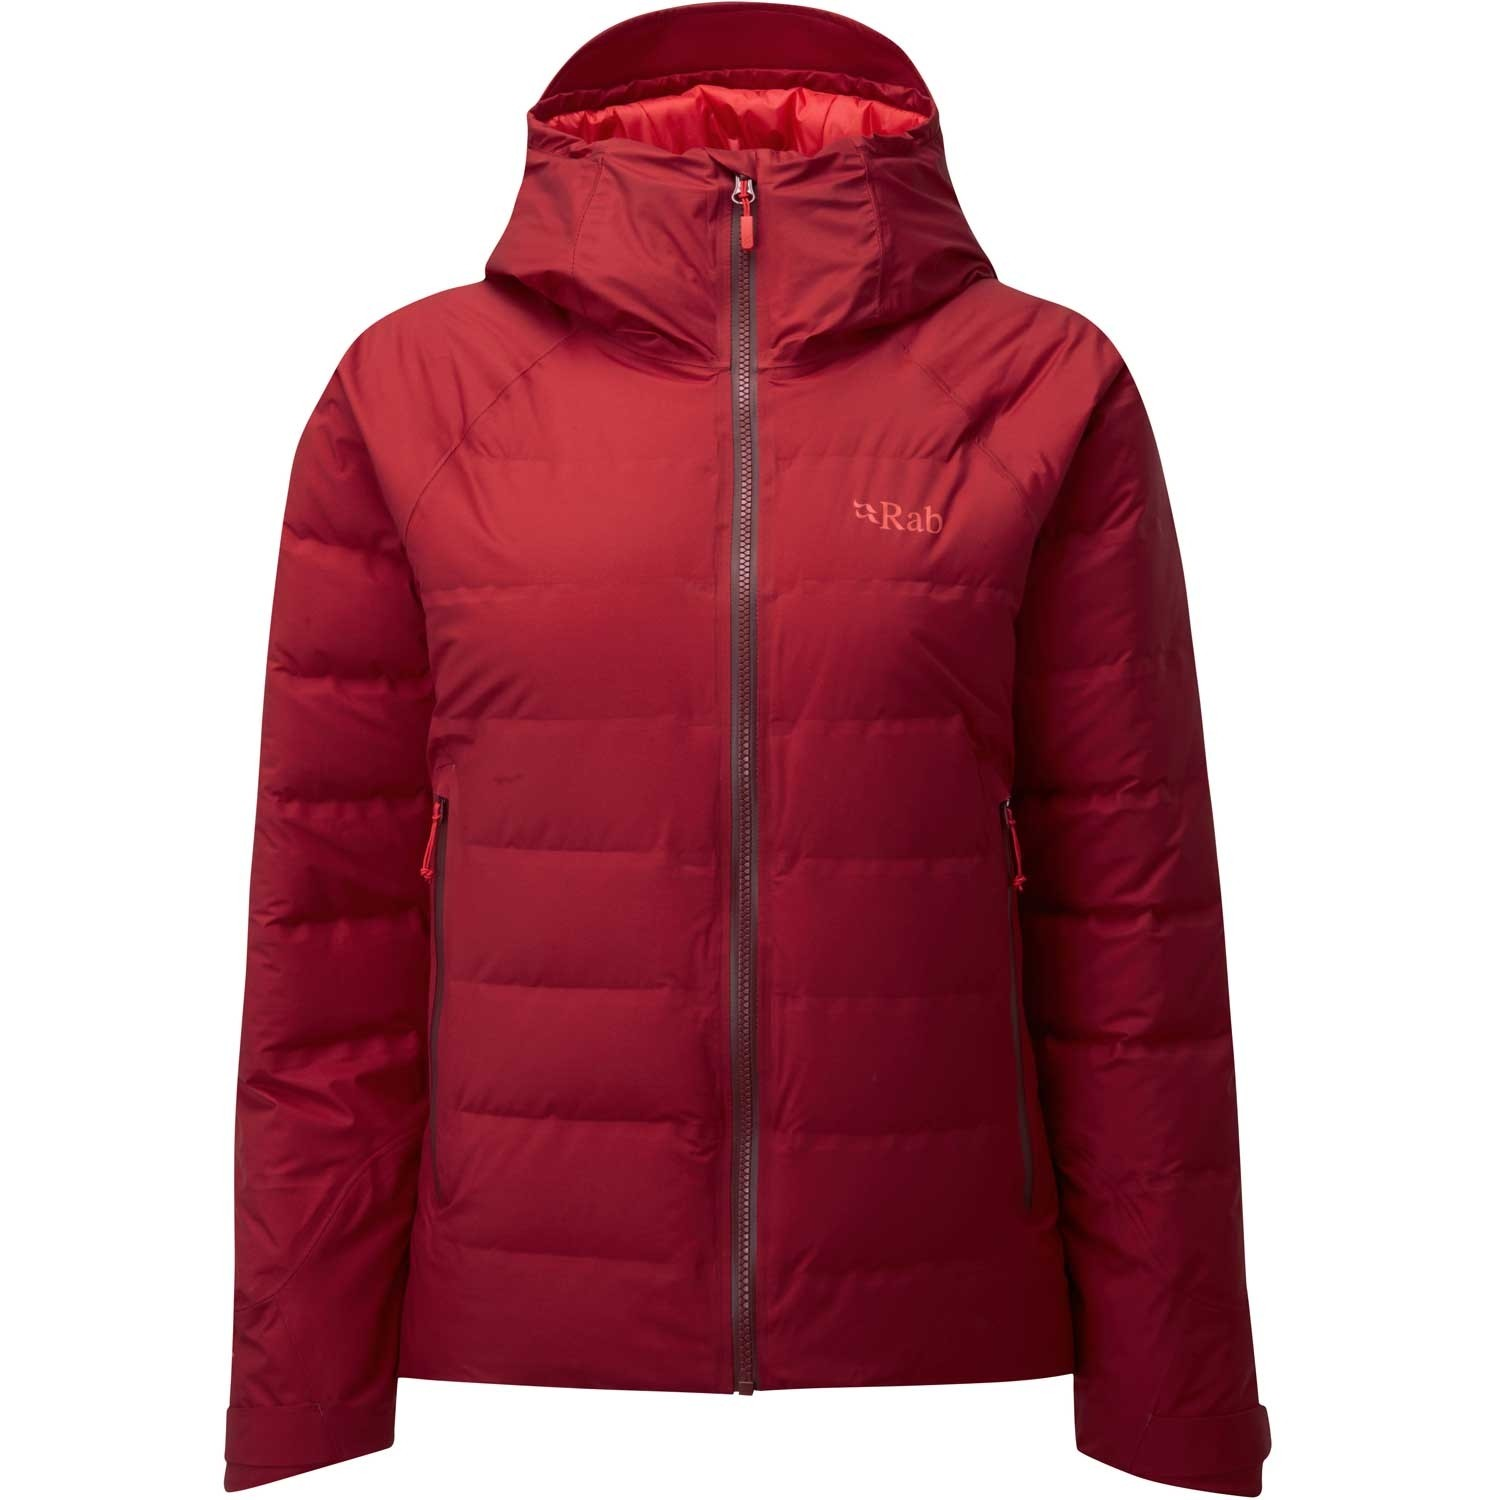 Rab Valiance Women's Down Jacket - Crimson